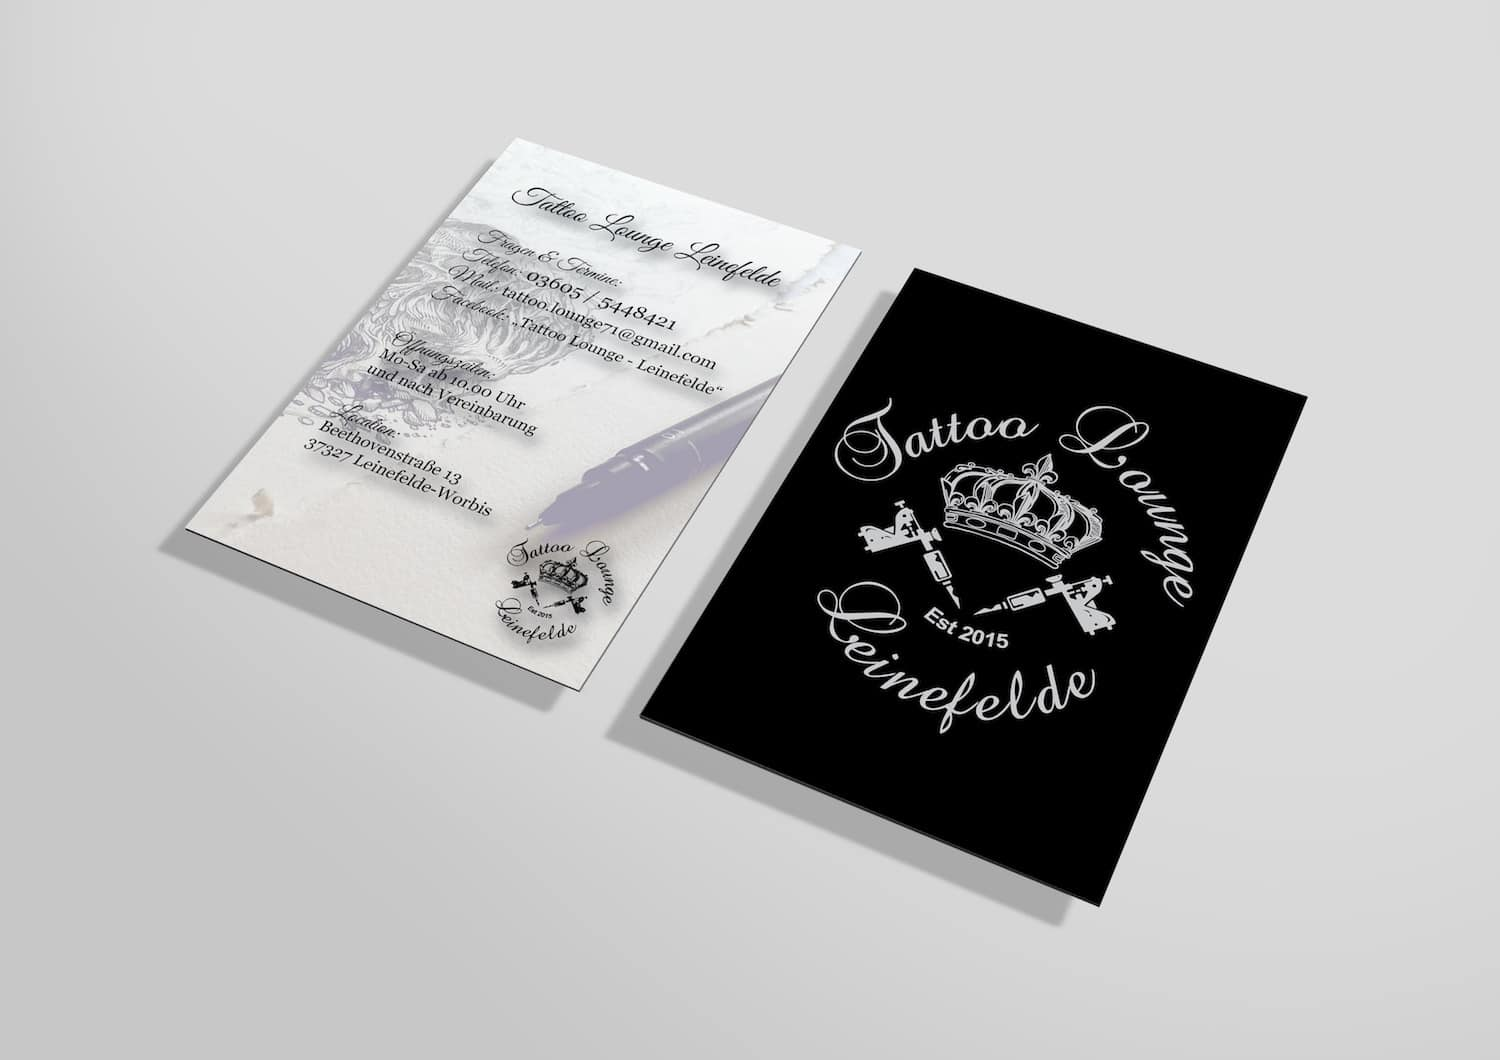 Tattoo Lounge Leinefelde Logo Branding Corporate Design Website Webseite Homepage Shirt druck Stick Merchandise Flyer Visitenkarte Bilder Fotos Fotografie